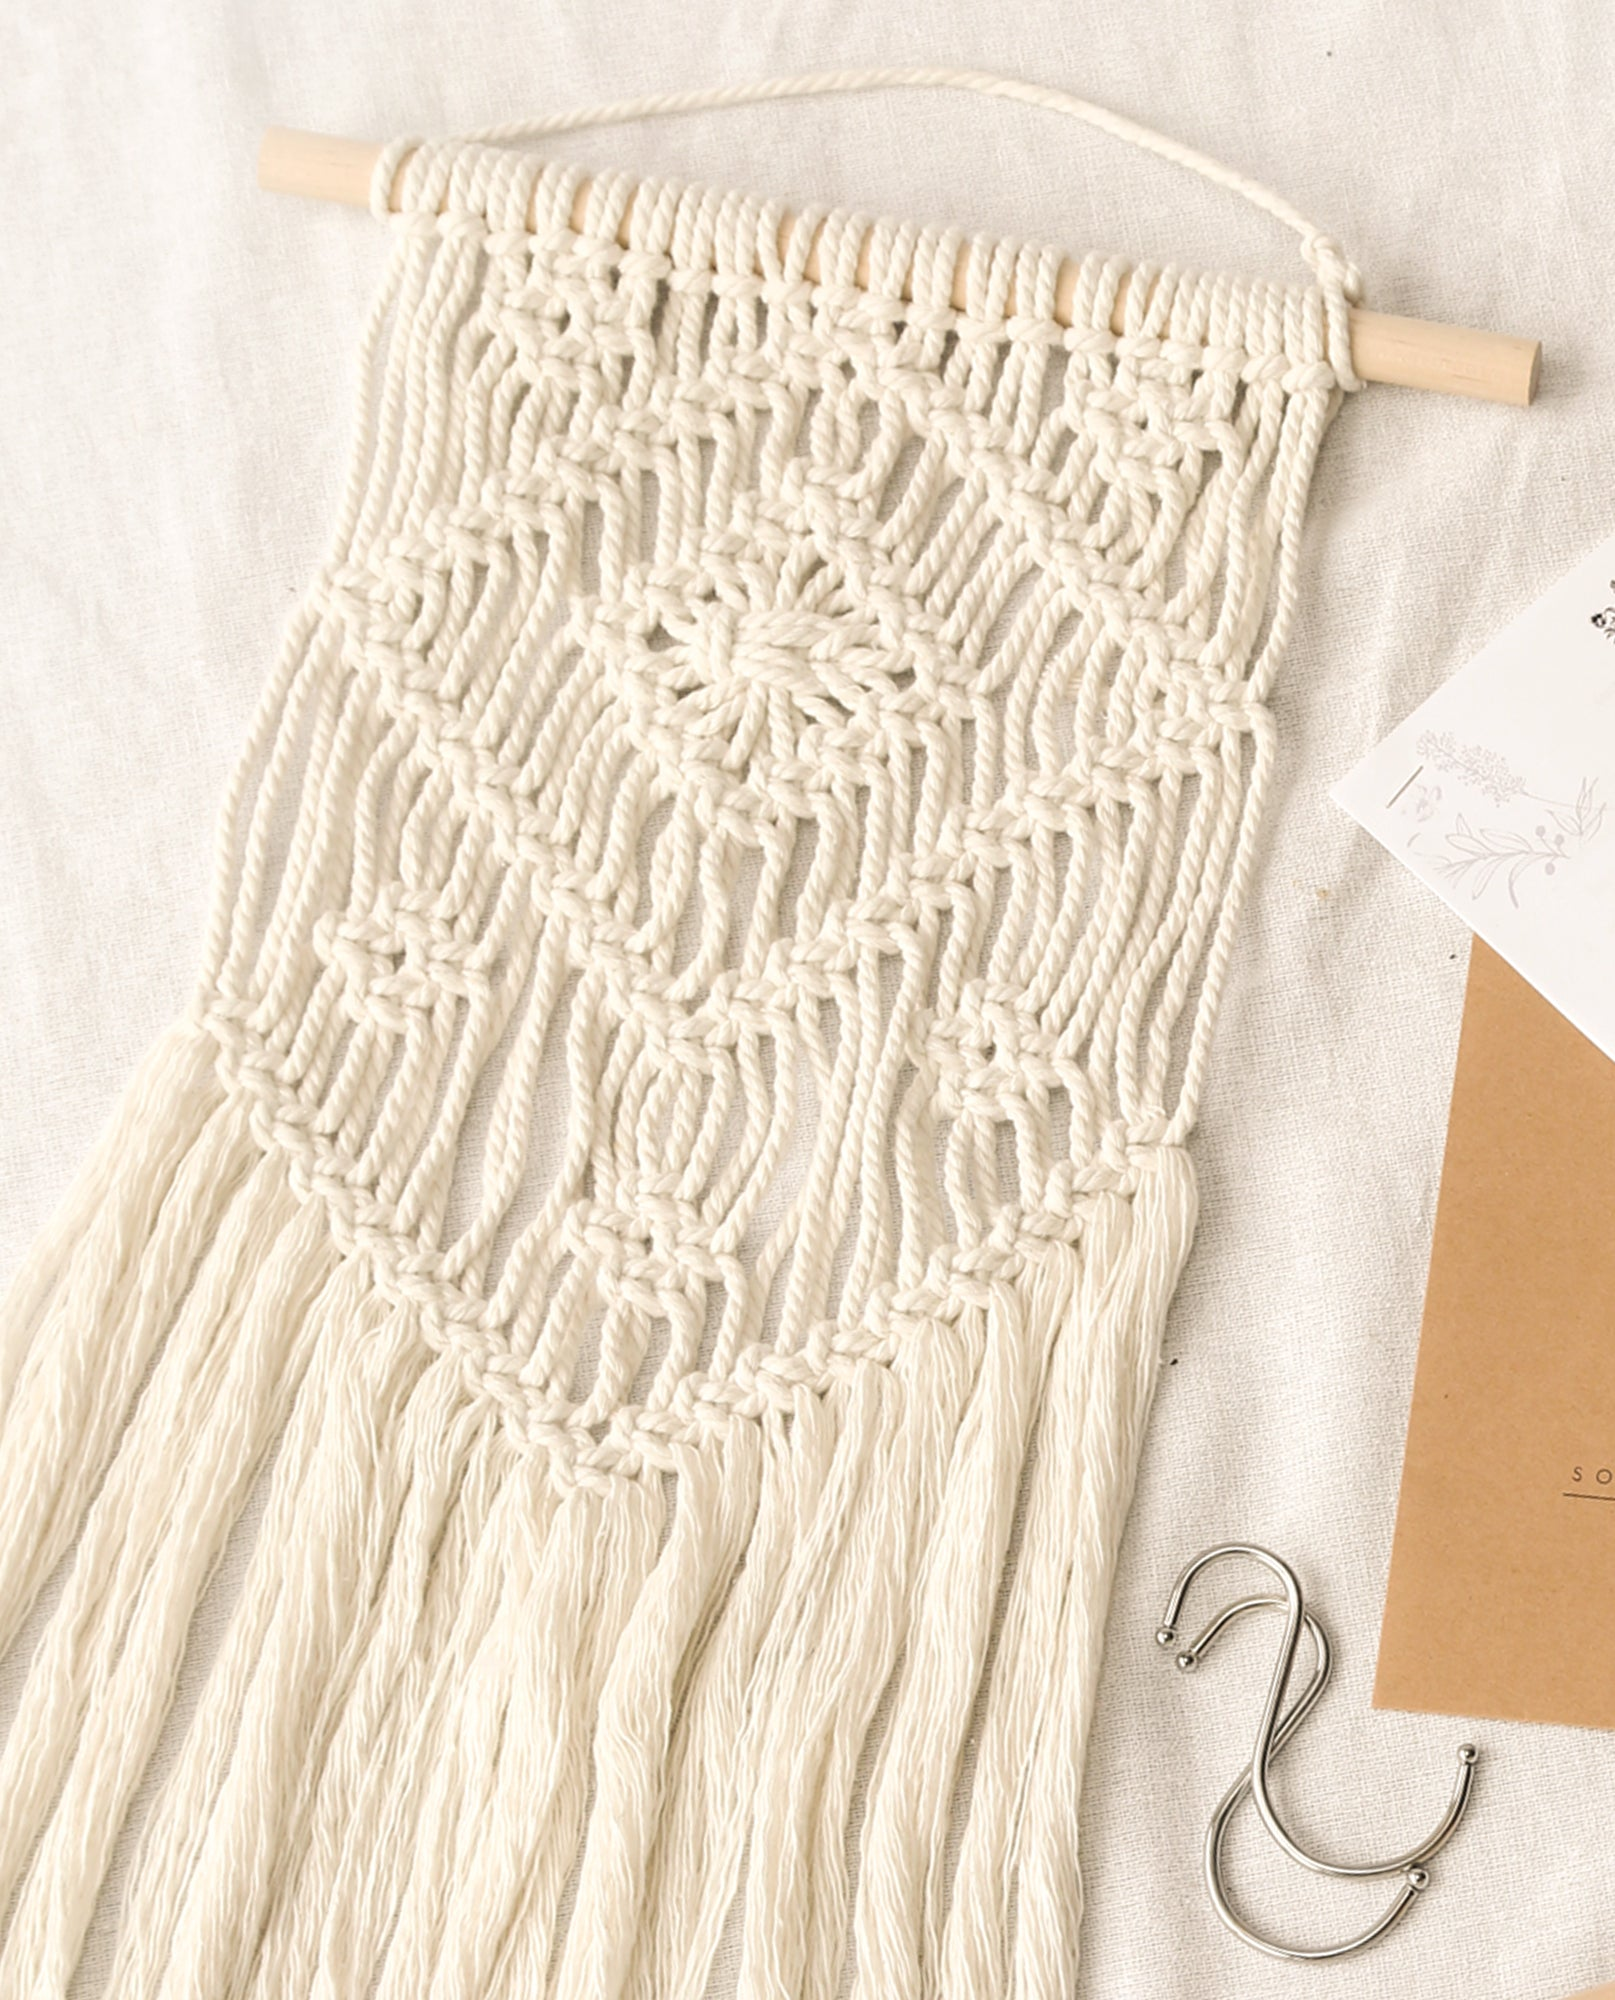 DIY Macrame Wall Hanging Kit